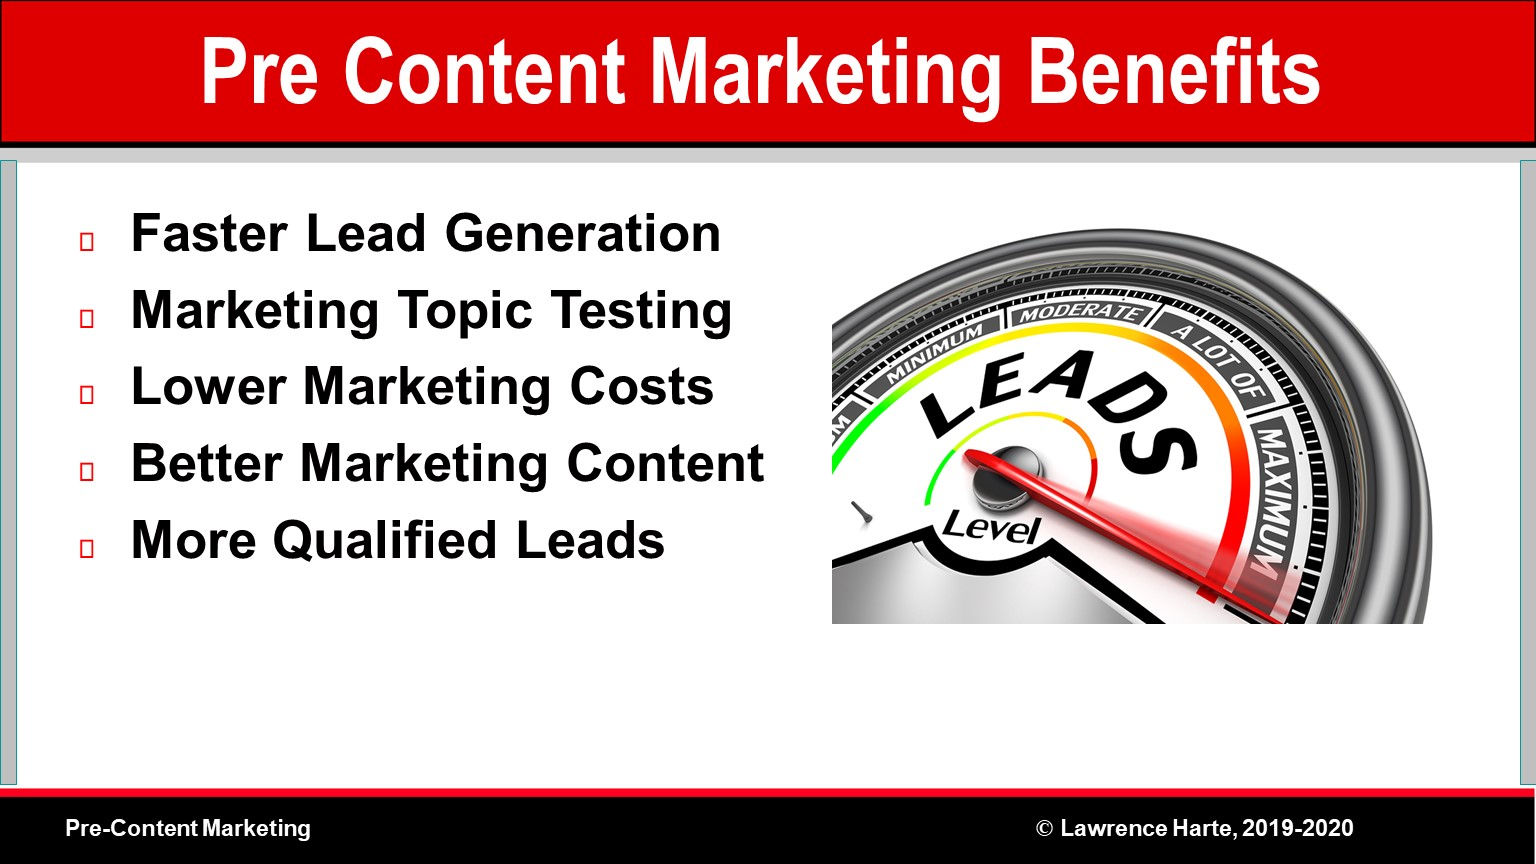 Pre-Content Marketing Benefits